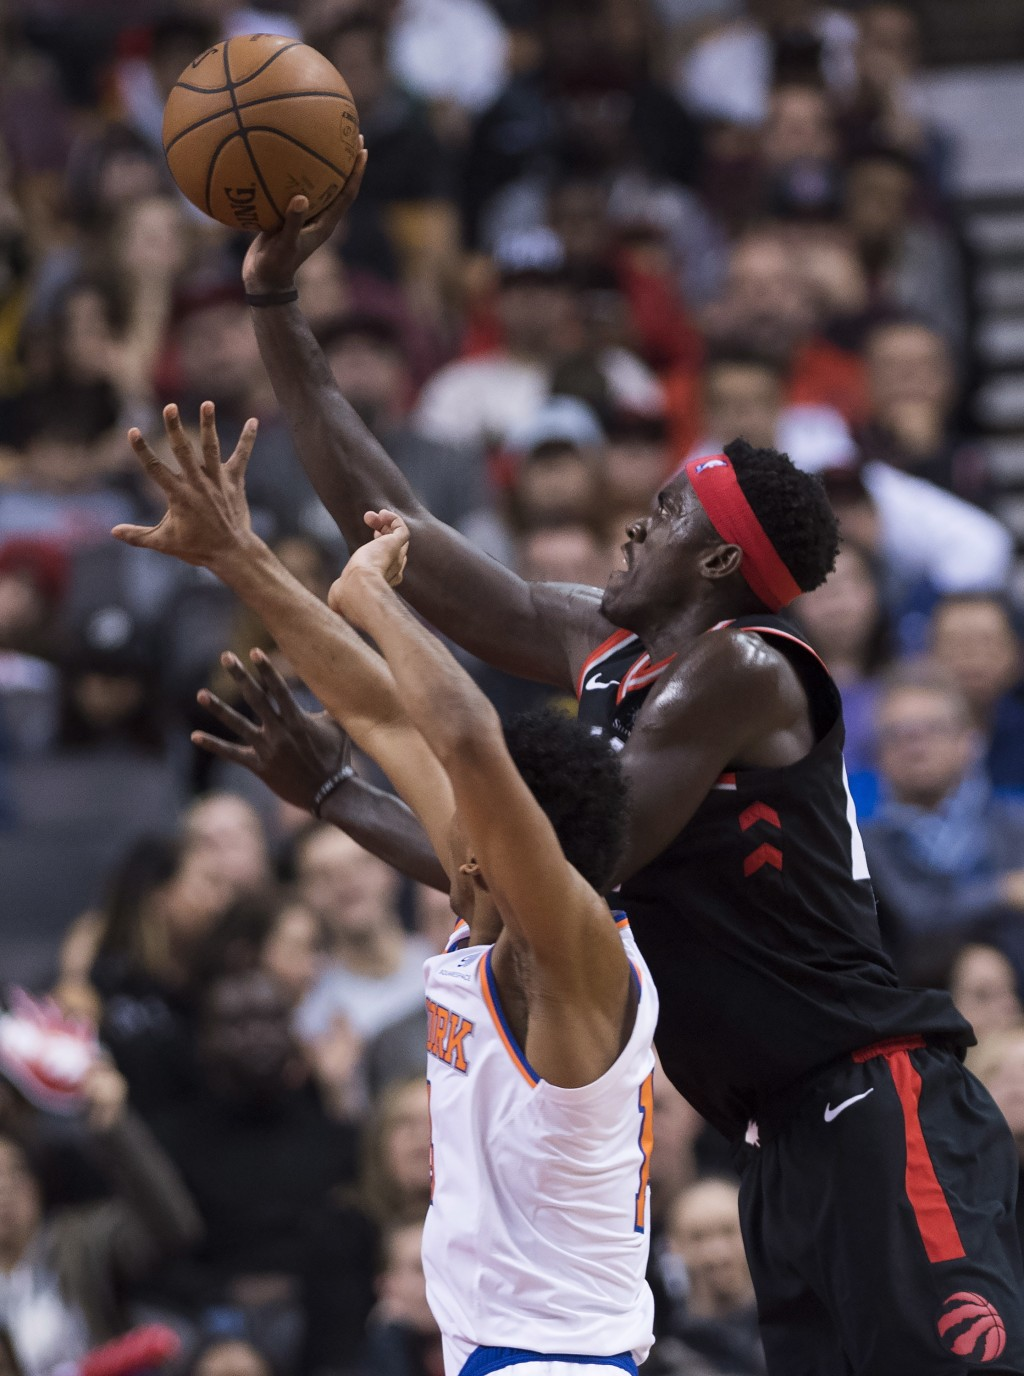 Toronto Raptors forward Pascal Siakam (43) drives to the net past New York Knicks guard Allonzo Trier (14) during second half NBA basketball action in